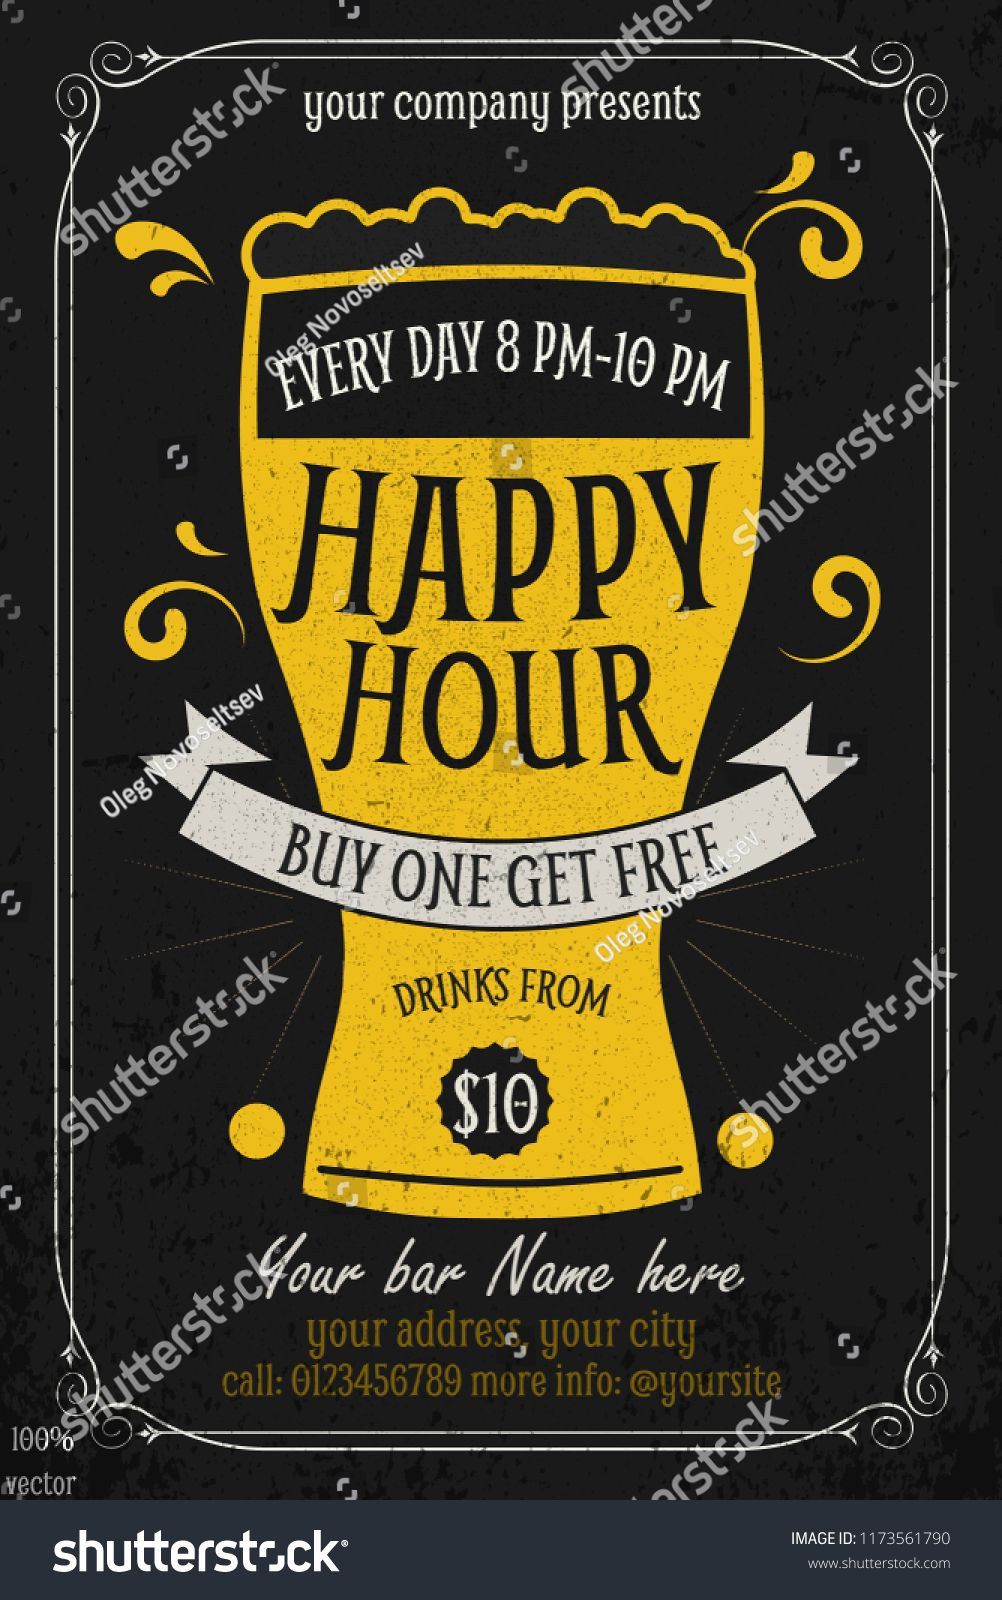 Happy Hour Invitation Template • Business Template Ideas